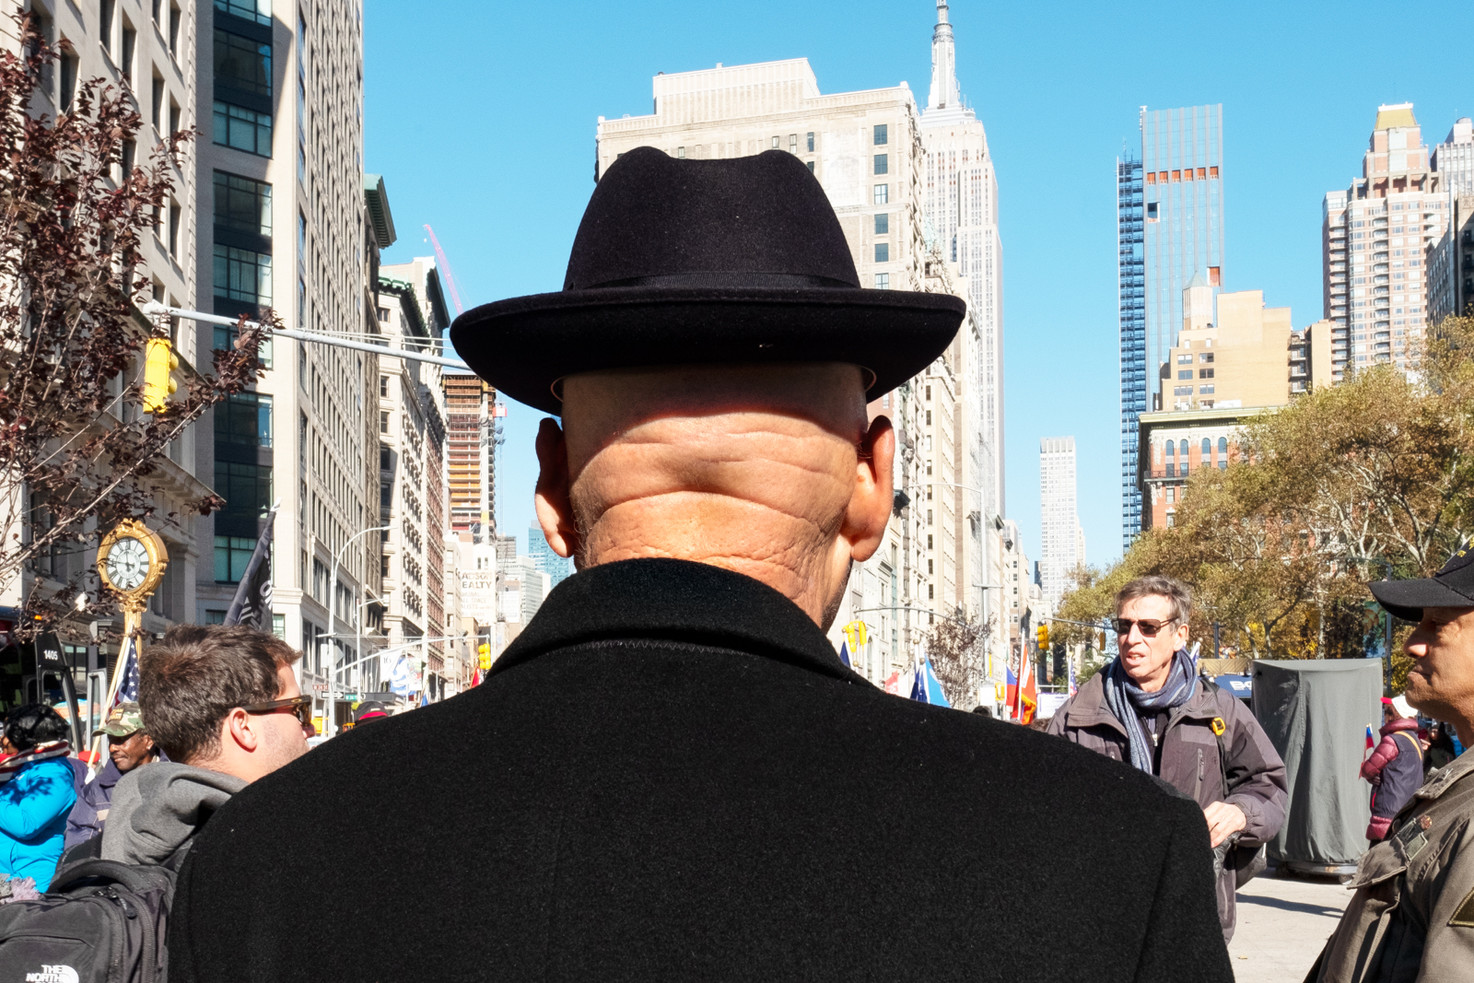 NYC_1_Man In The Bowler Hat.jpg